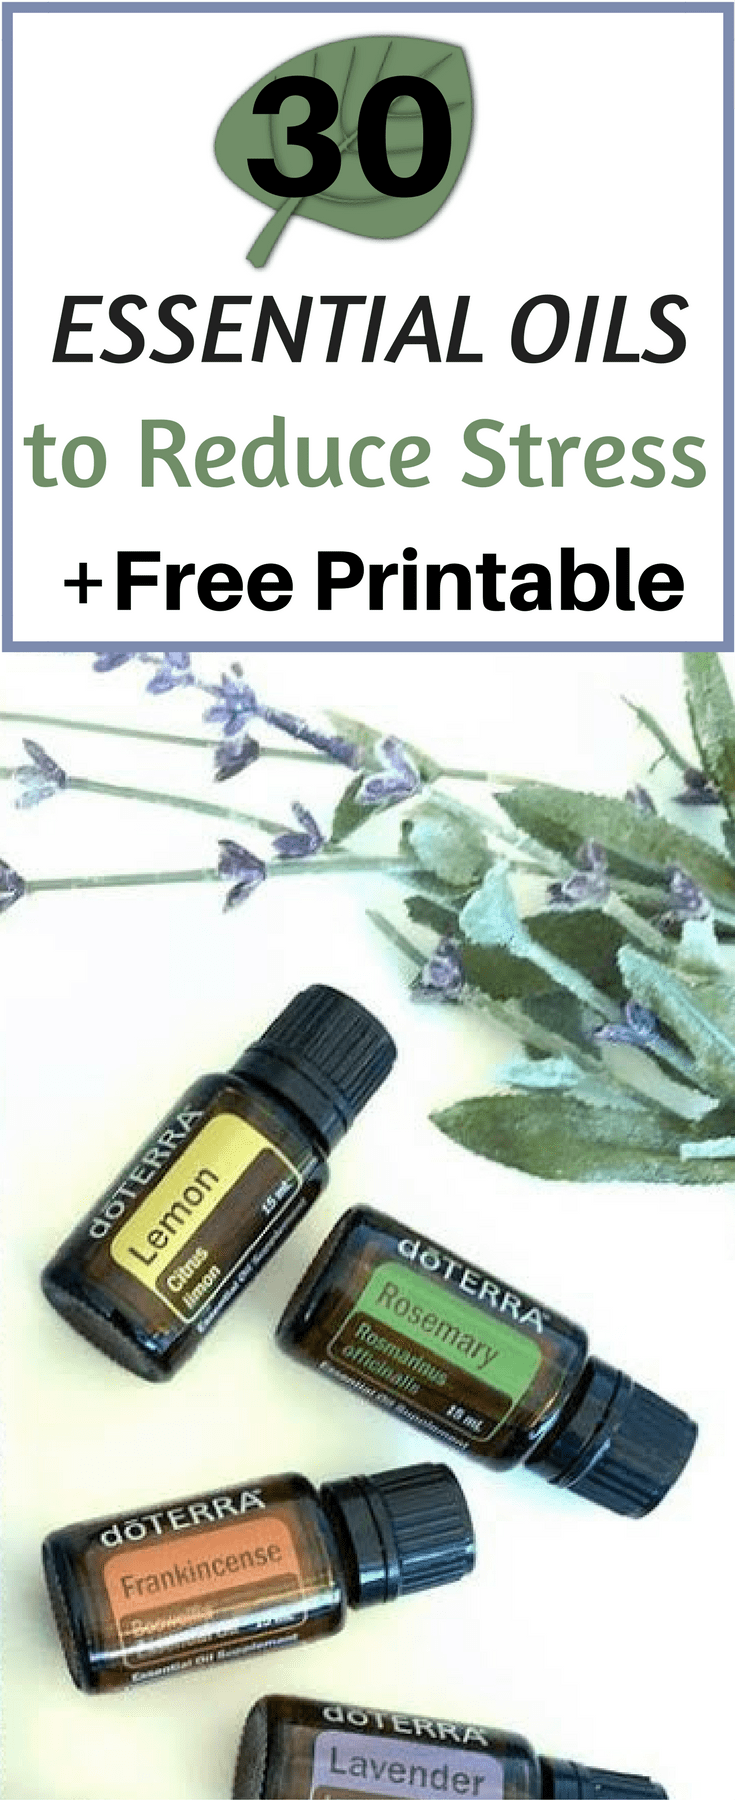 Get your free printable of 30 essential oils to reduce stress!